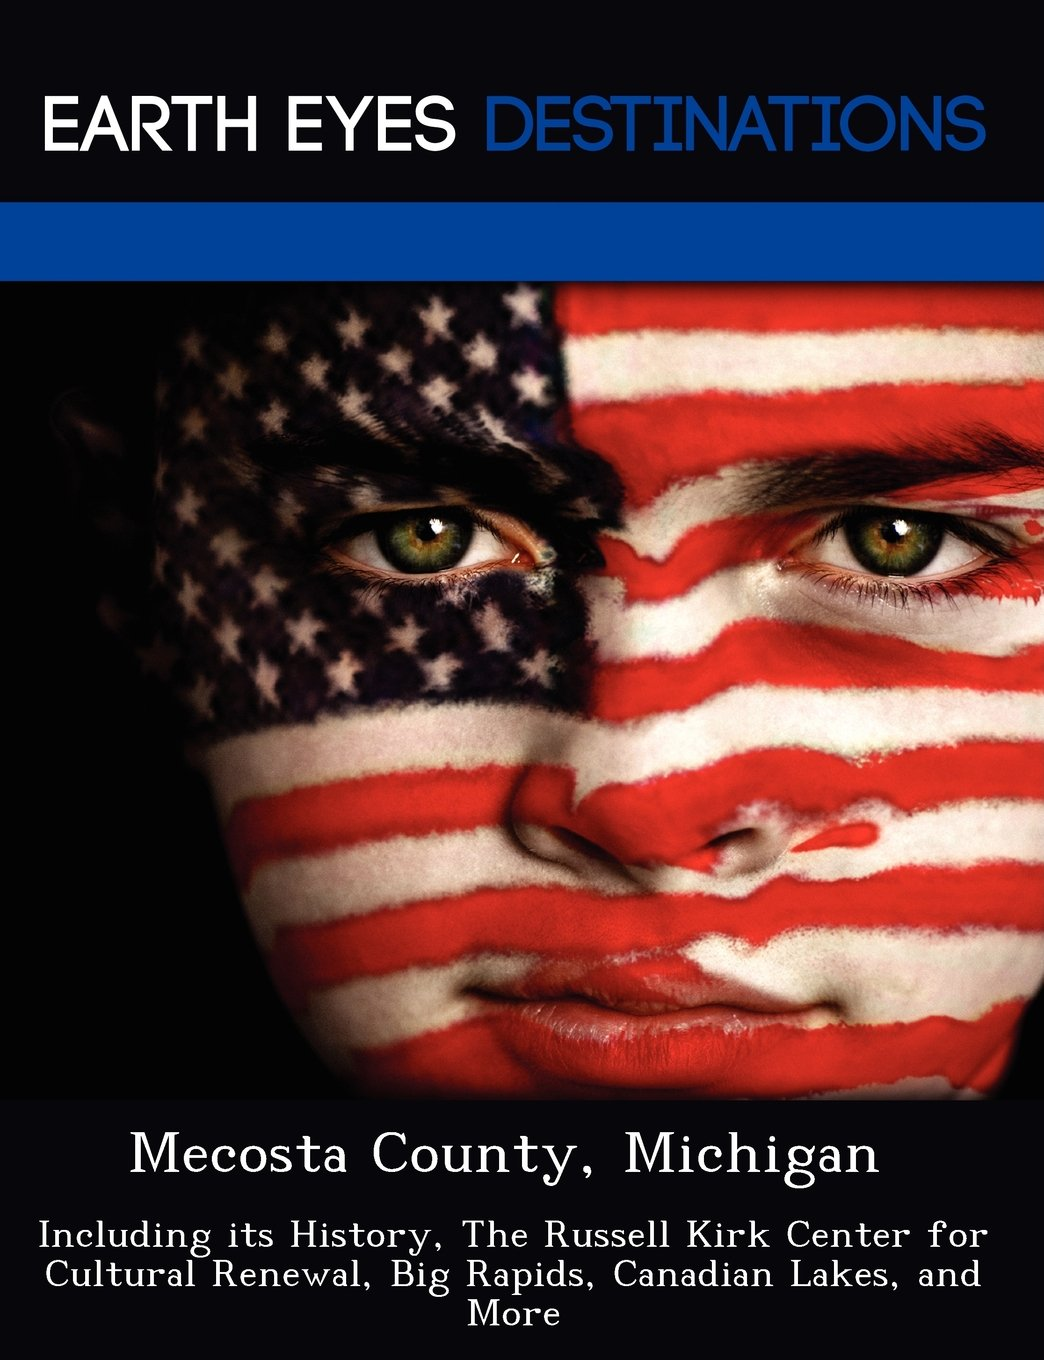 Michigan mecosta county barryton - Mecosta County Michigan Including Its History The Russell Kirk Center For Cultural Renewal Big Rapids Canadian Lakes And More Johnathan Black